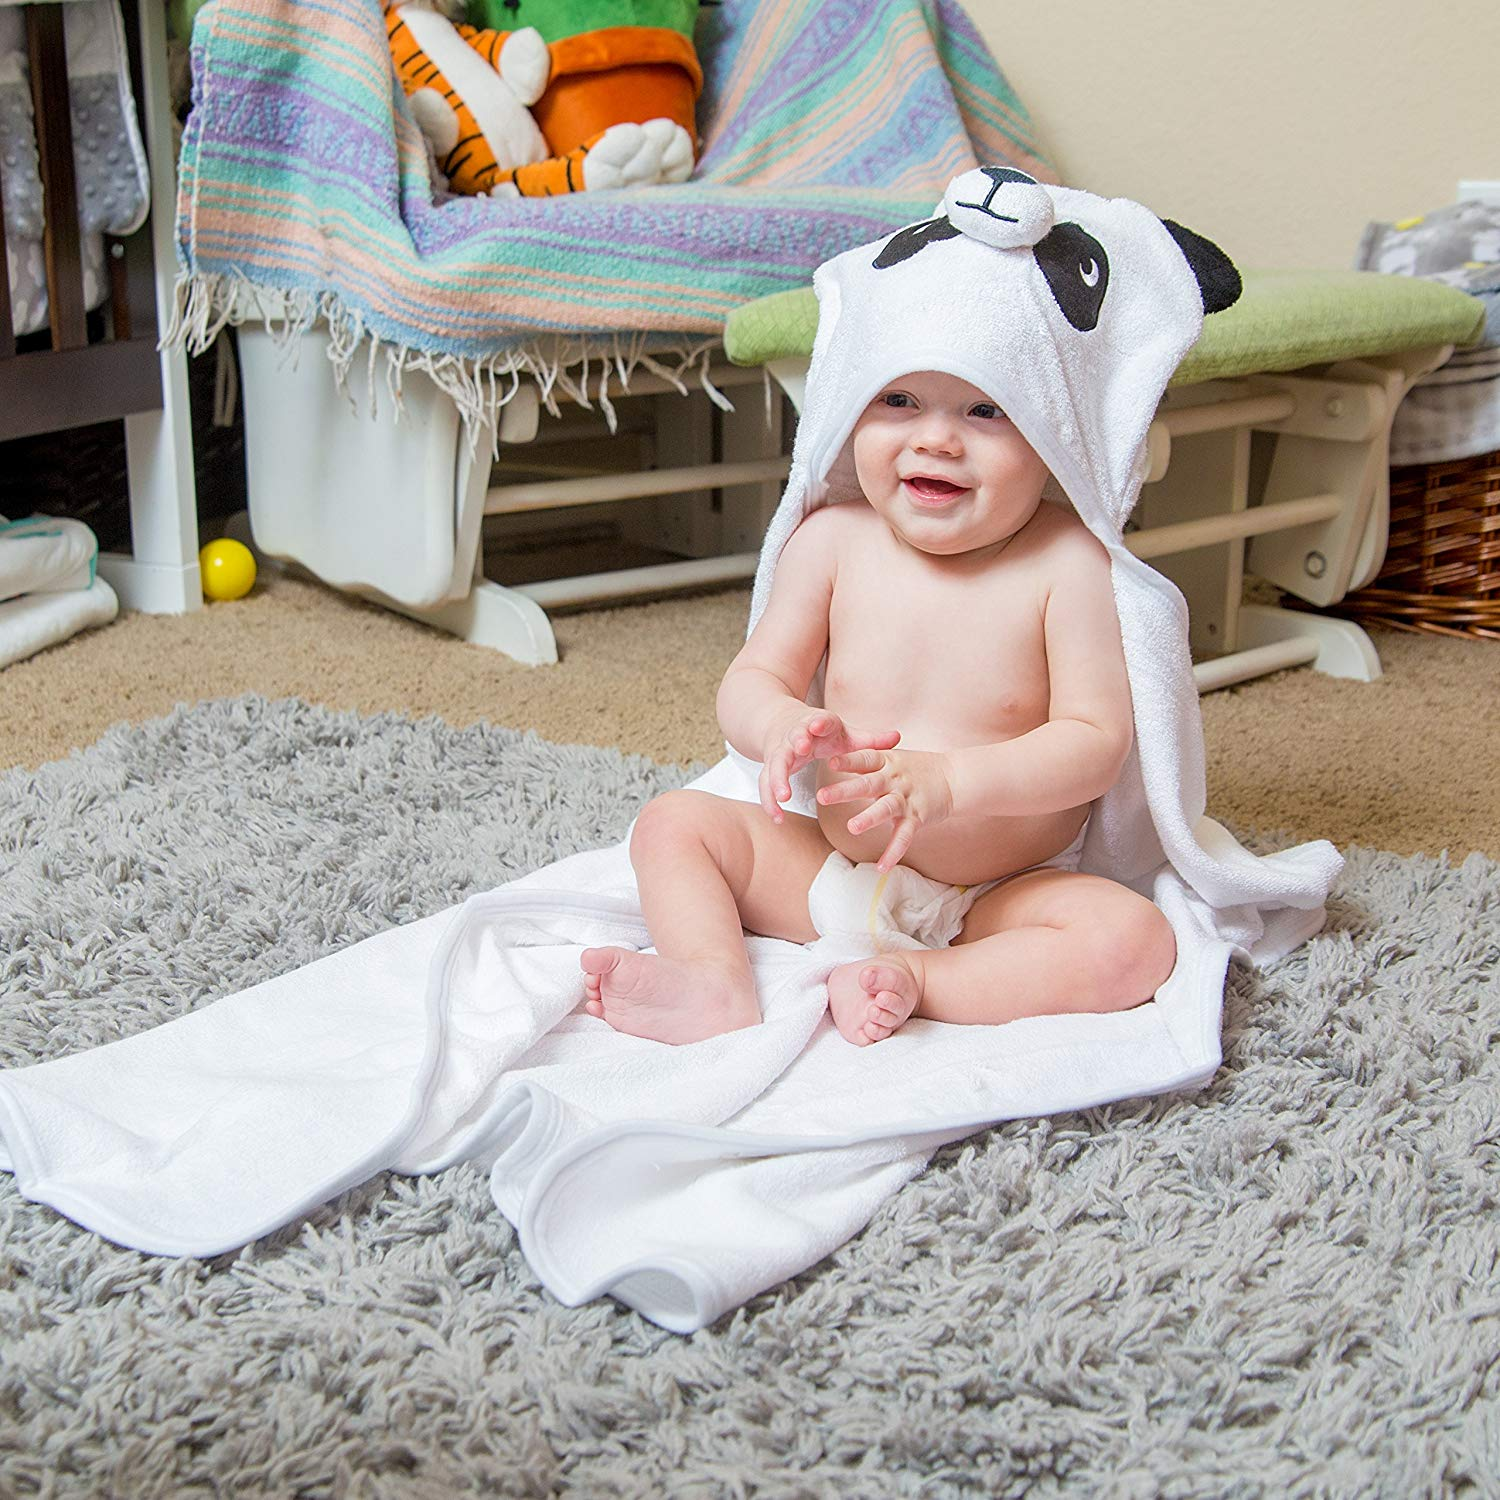 Bamboo Panda Hooded Baby Towel 100 Organic Unisex Towel Highly Absorbent And Super Soft Bath Towel For The Pool An B071G2C4Z9